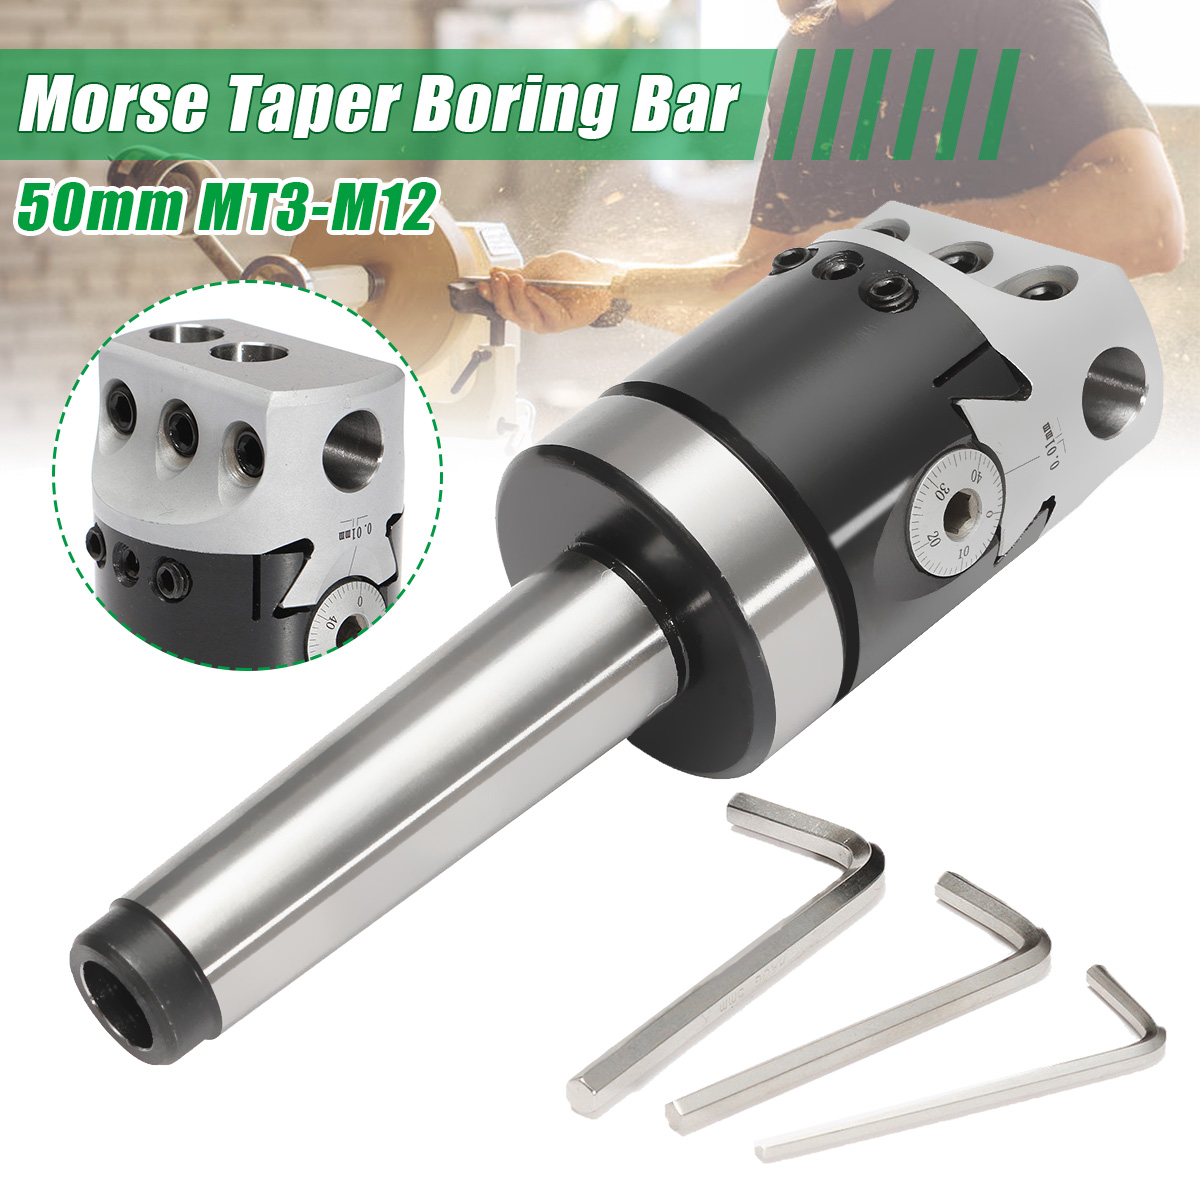 1Set High Quality 50mm MT3-M12 Universal Usage Boring Head With Morse Taper Shank For Lathe Milling Tool